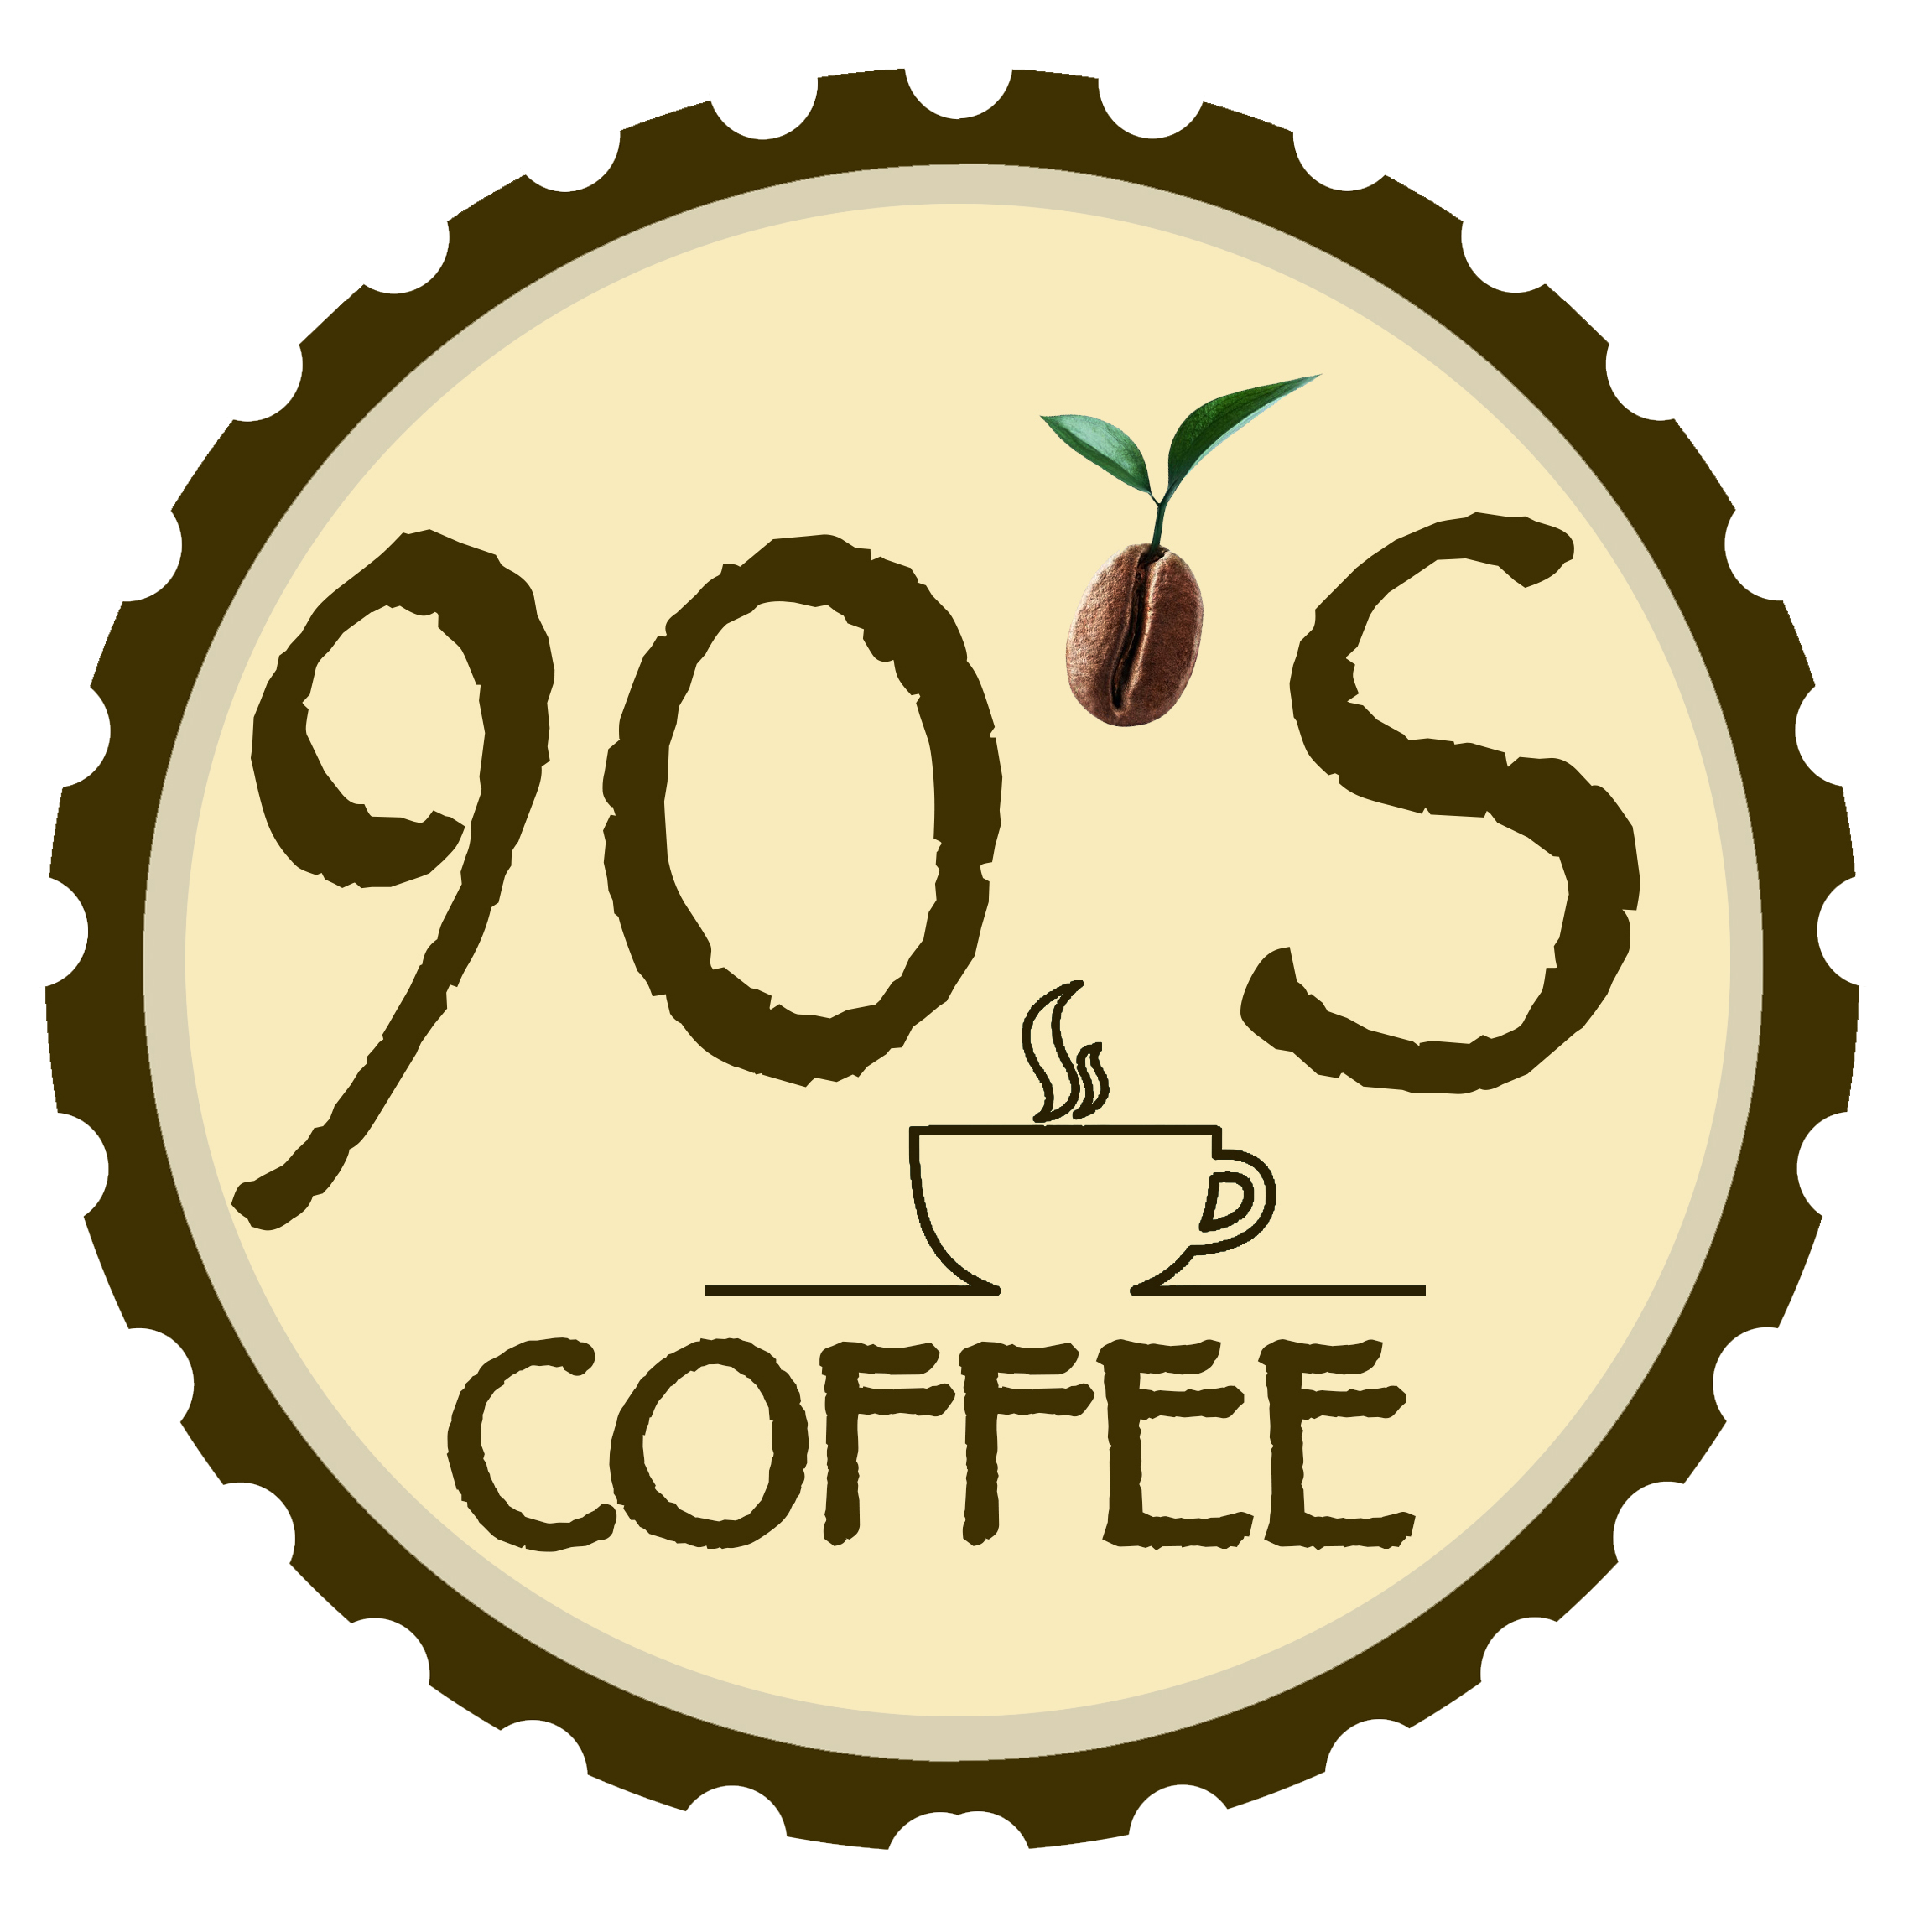 90S Coffee Vietnam